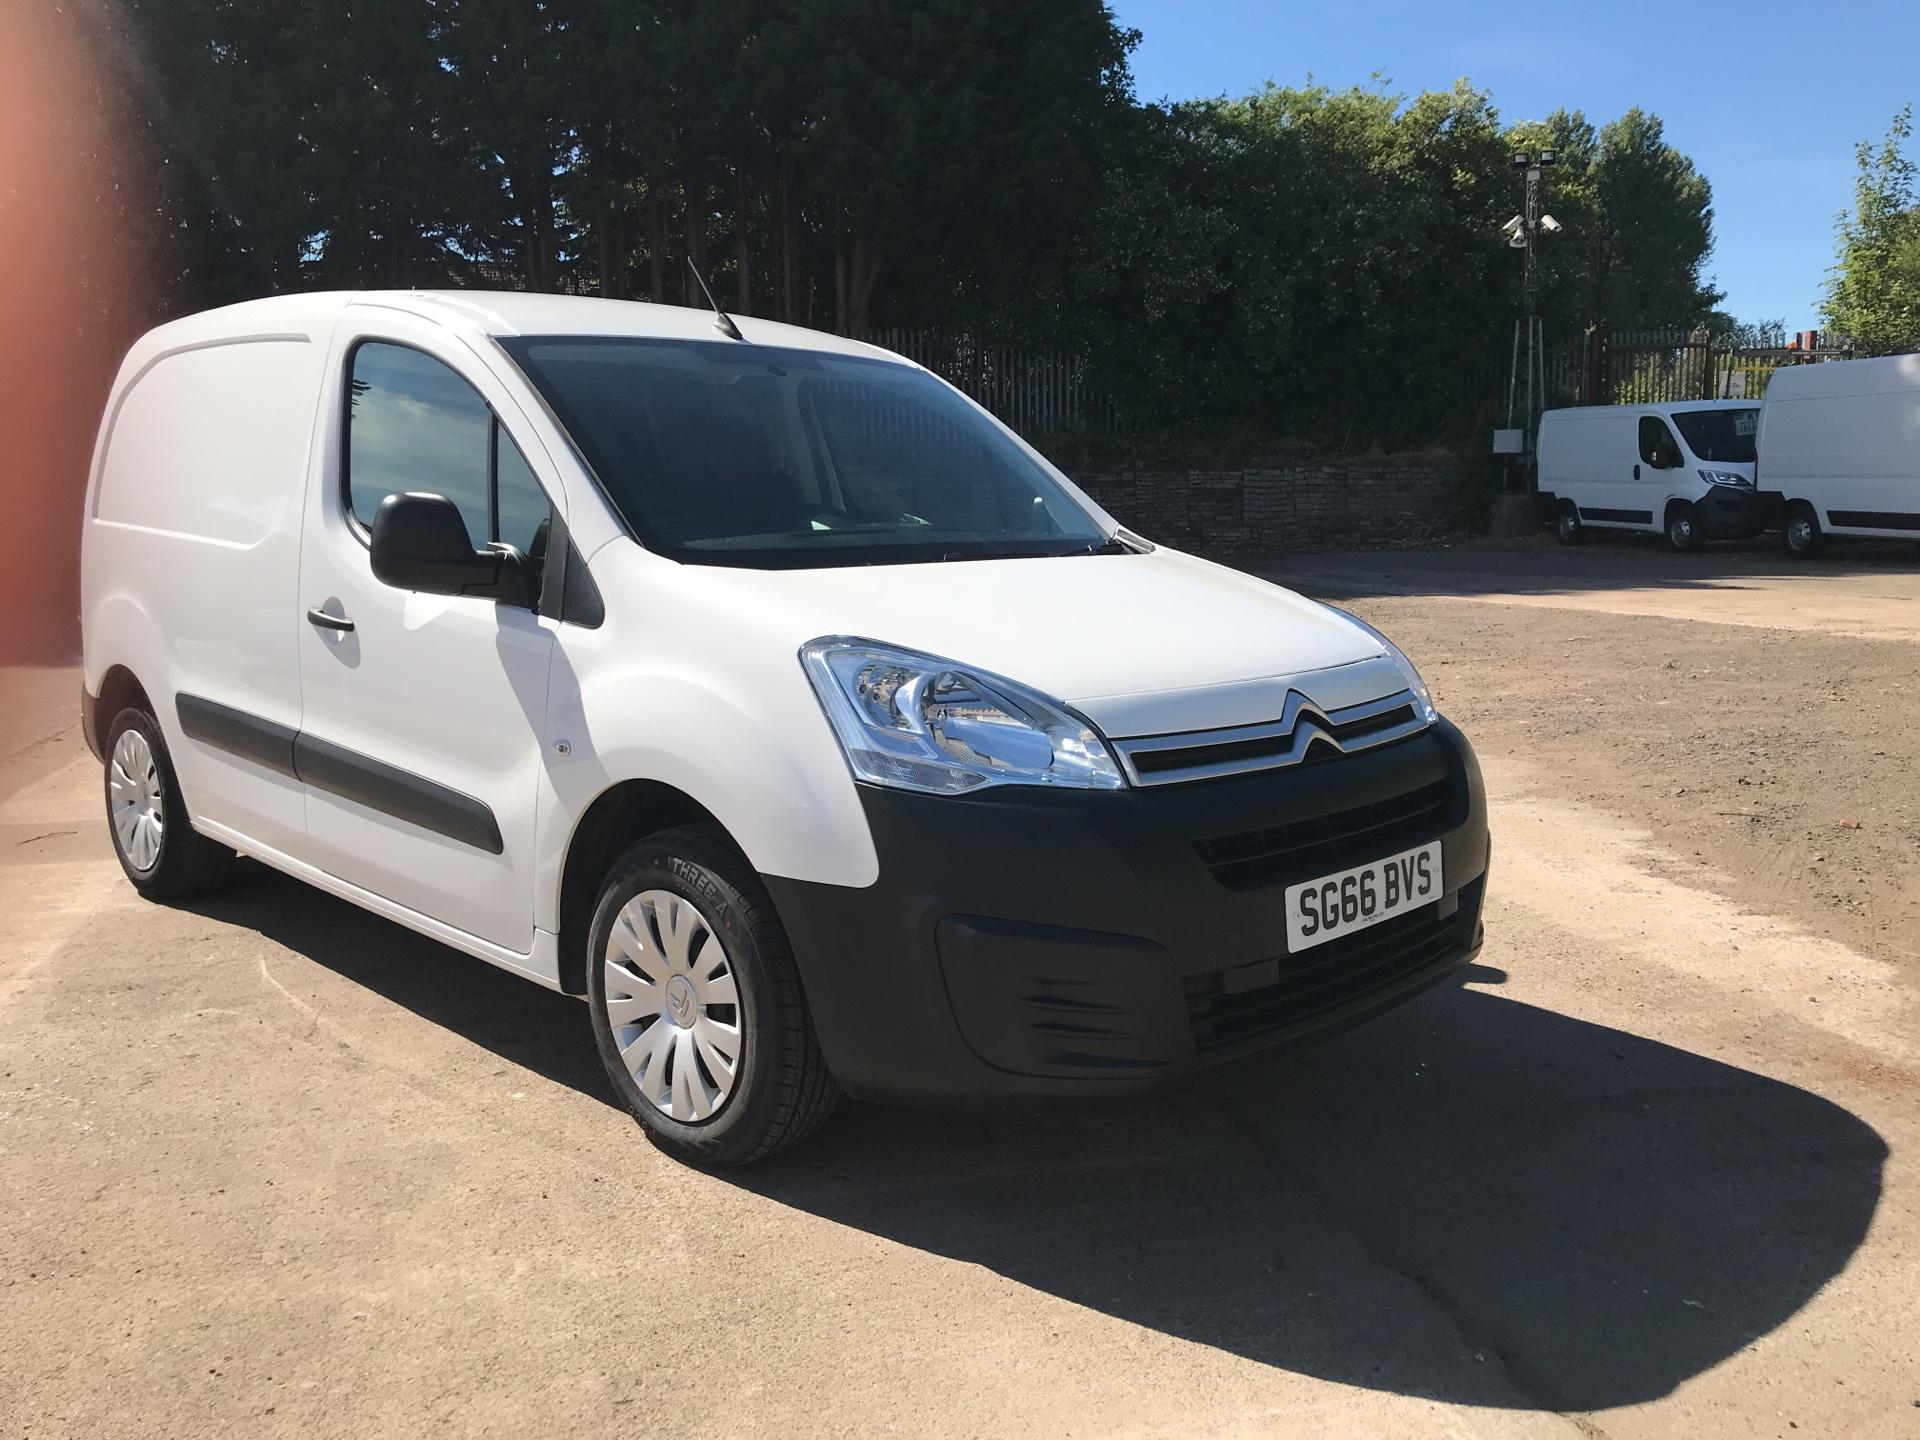 2016 Citroen Berlingo L1 DIESEL 1.6 BLUE HDI 625KG ENTERPRISE 75PS EURO 6 (SG66BVS)